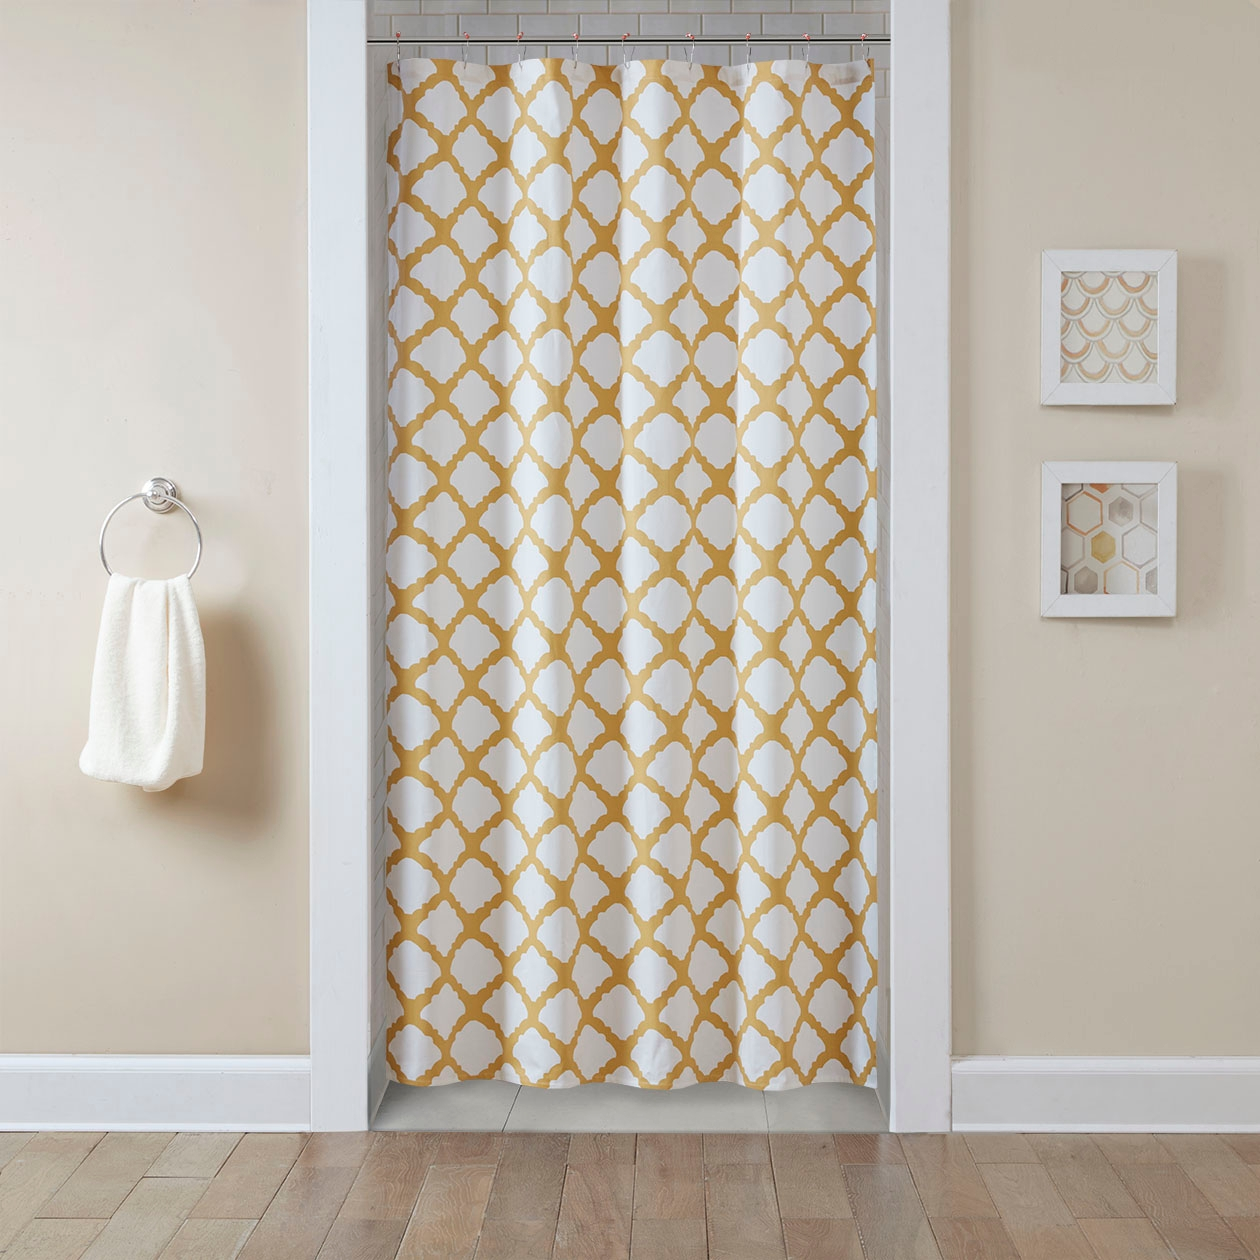 Shower Curtains For Beige Walls